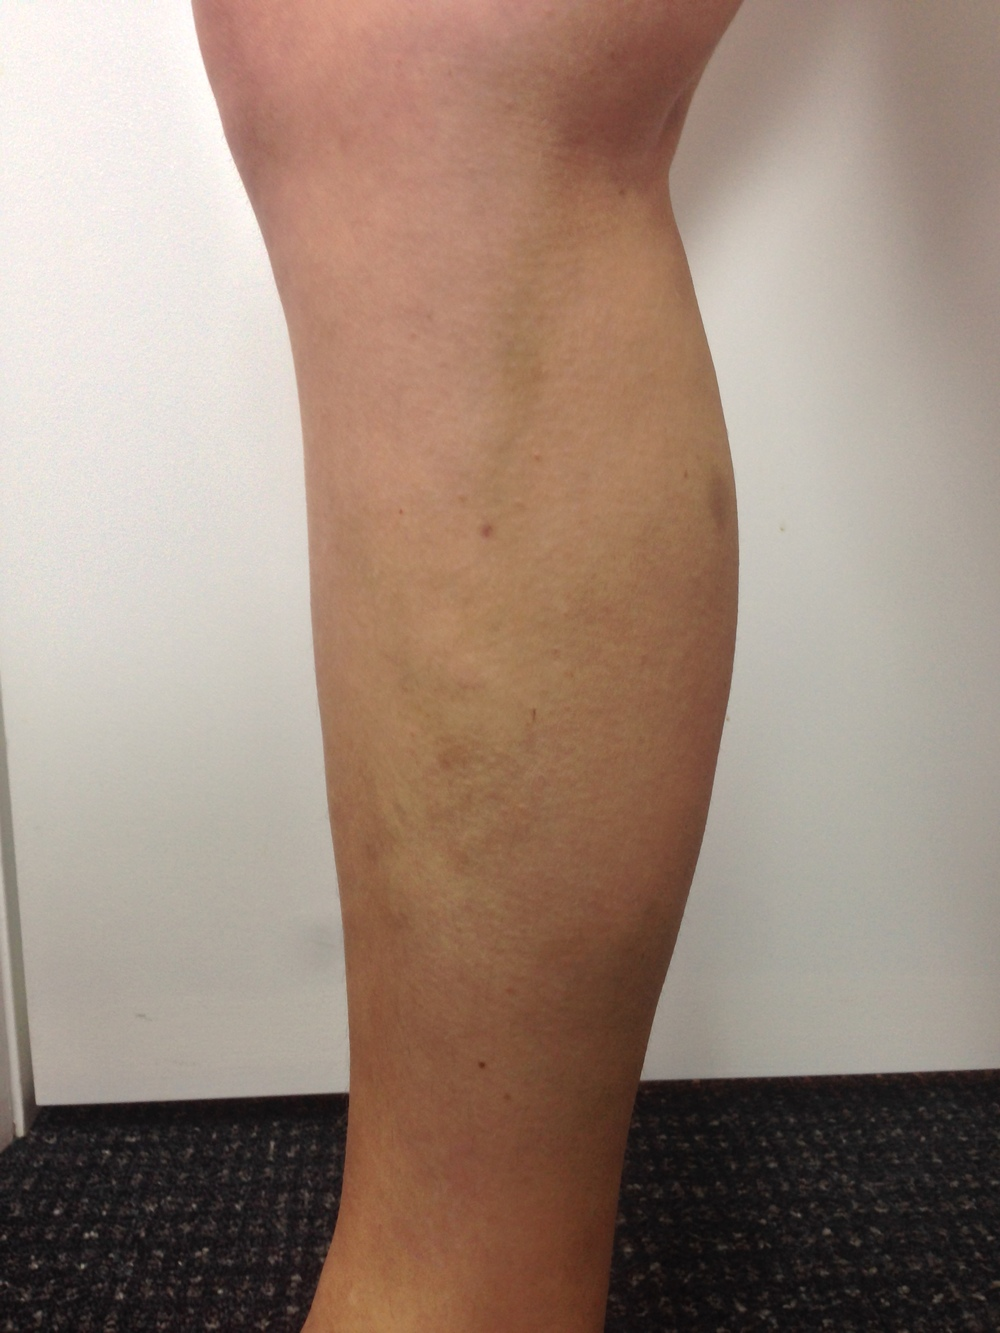 Treatment: EndoVenous Laser Ablation and Ultrasound Guided Sclerotherapy - 6 months.